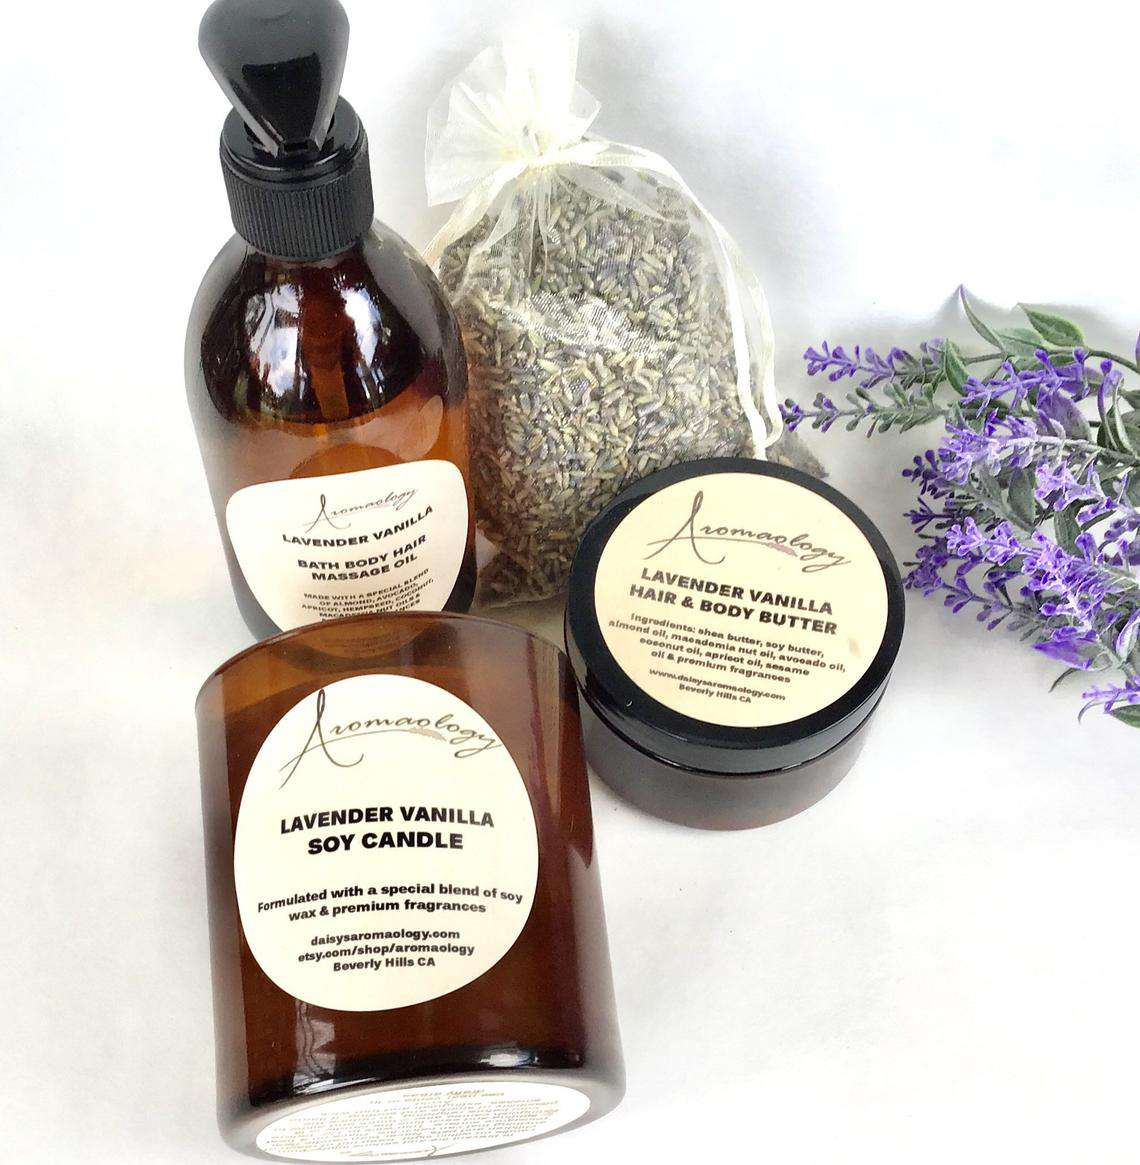 Aromaology Lavender vanilla gift set with body butter, massage oil, and soy candle